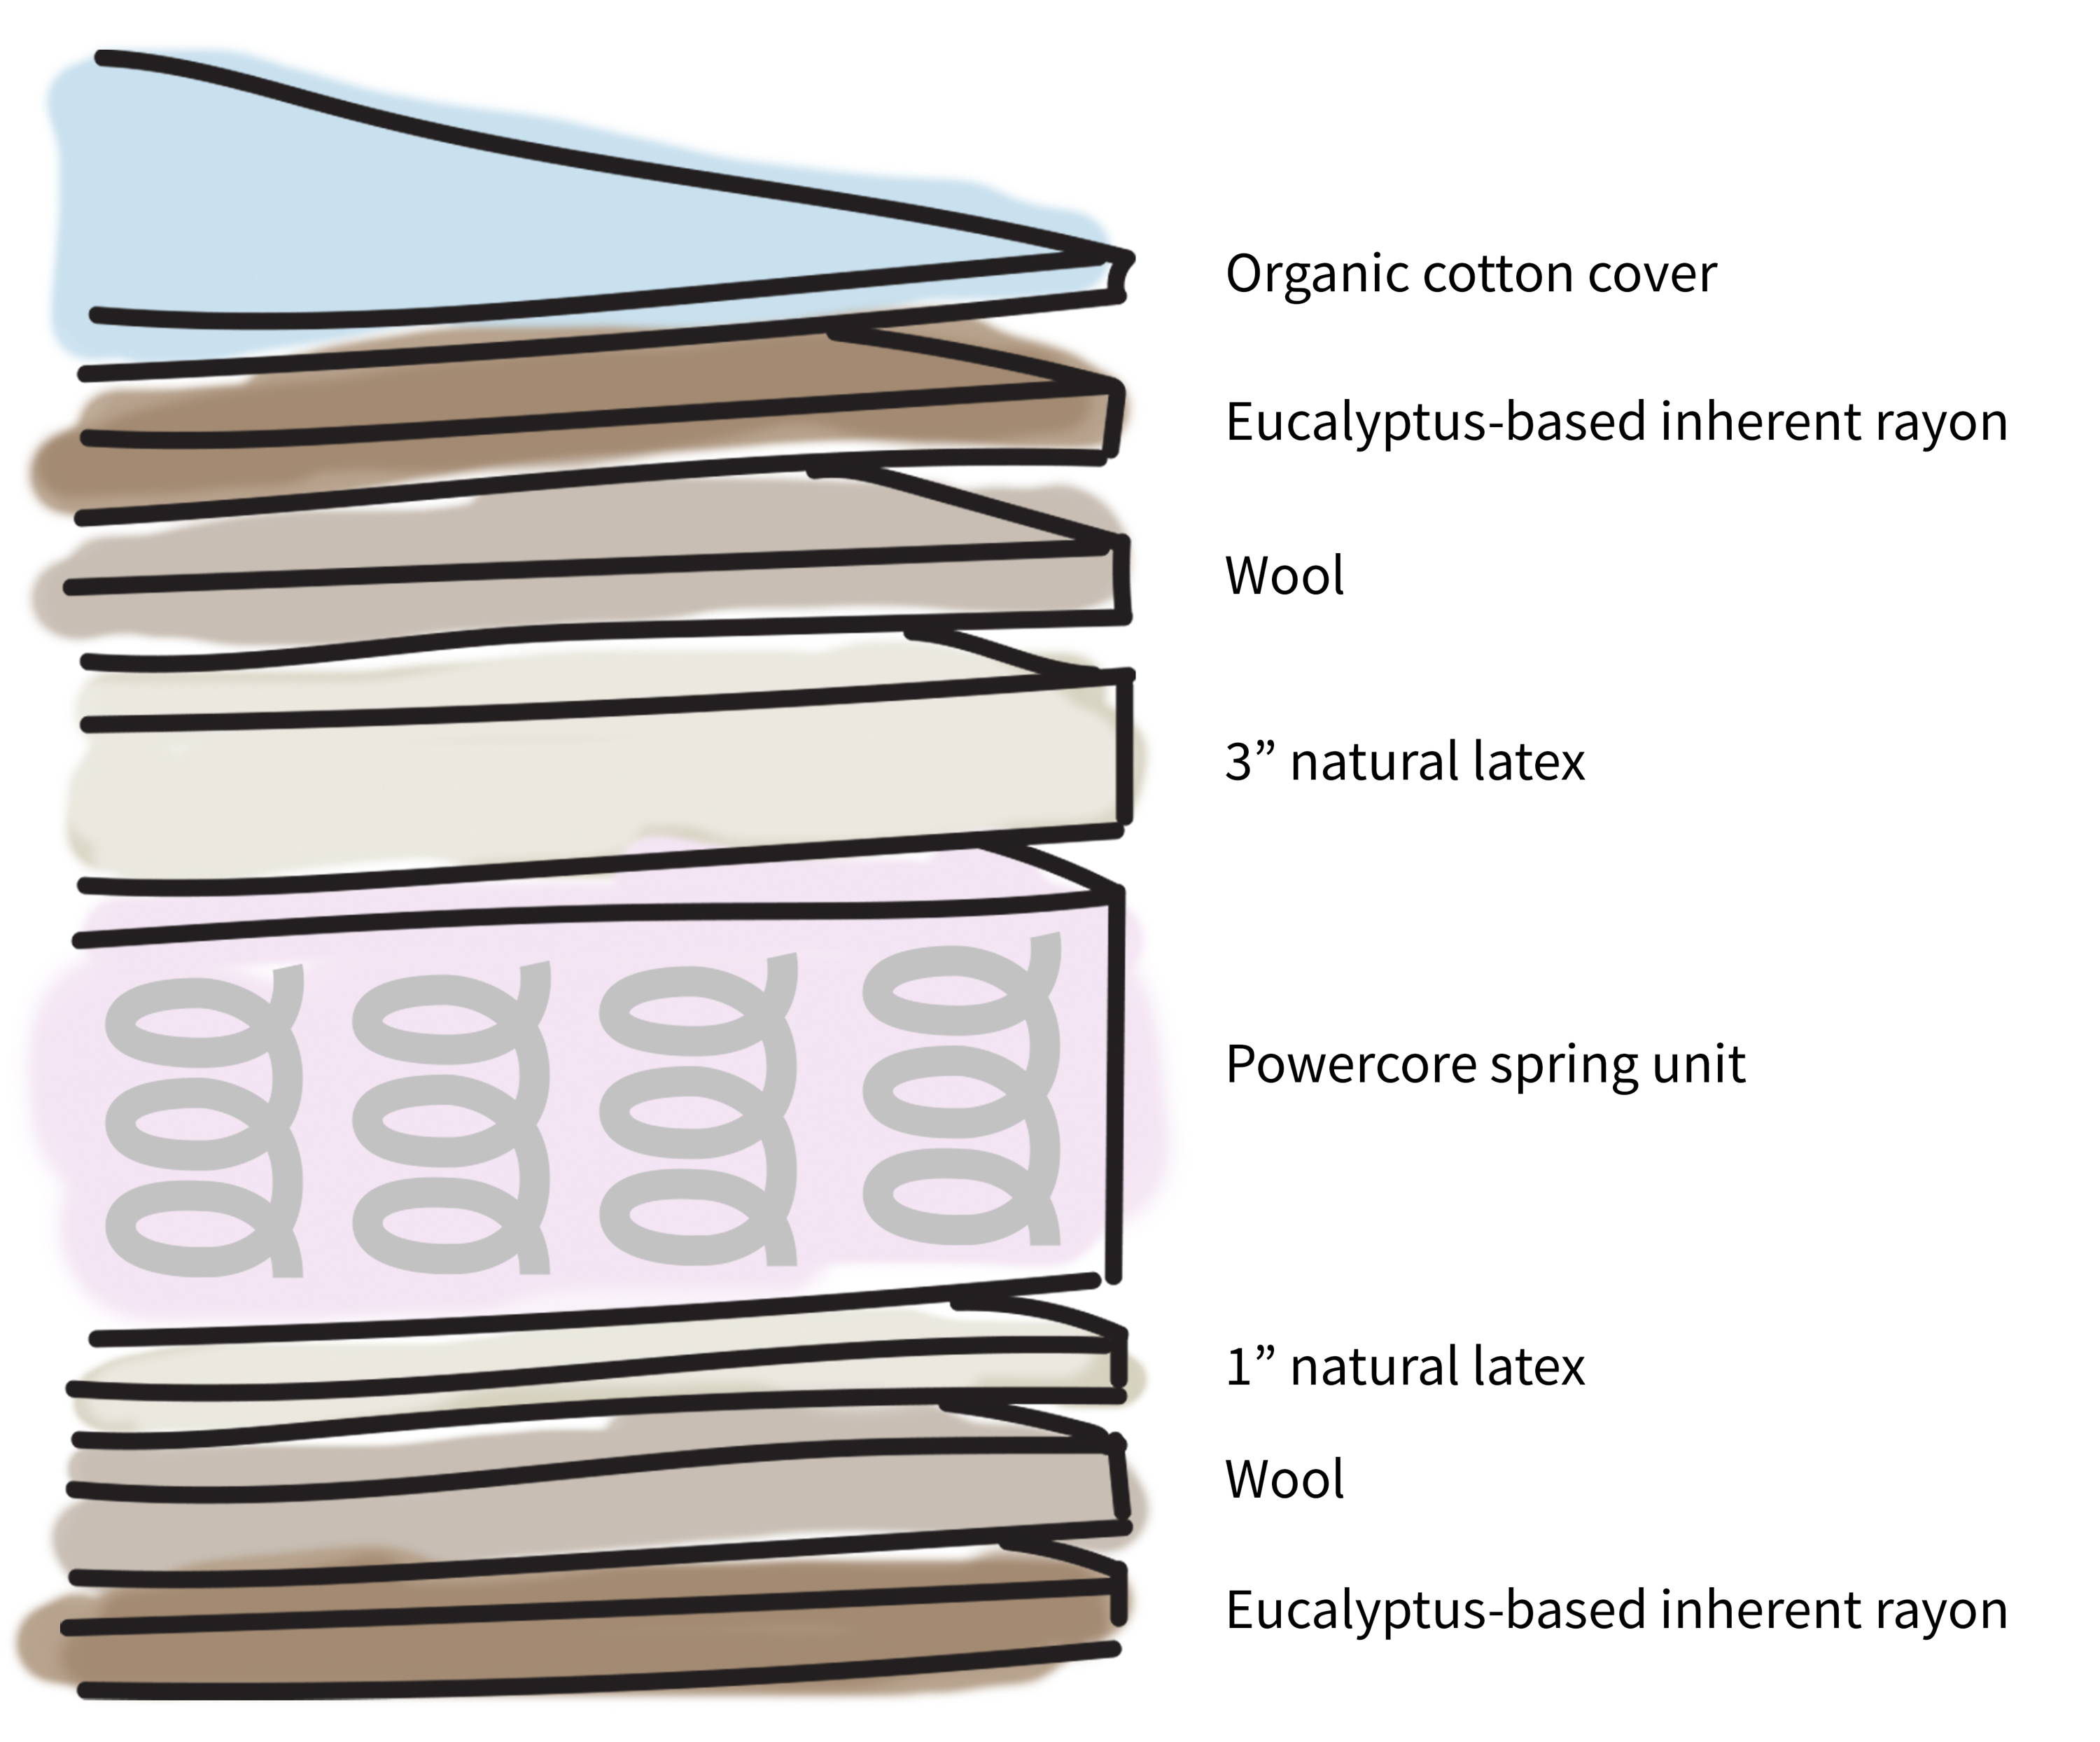 Layers of a mattress showing the contents of Real Bed. Illustration. Showing layers from top to bottom: organic cotton cover, eucalyptus-based inherent rayon, wool, 3 inch natural latex, Powercore spring unit, non-allergenic, eco-efficient down substitute, wool, eucalyptus based inherent rayon